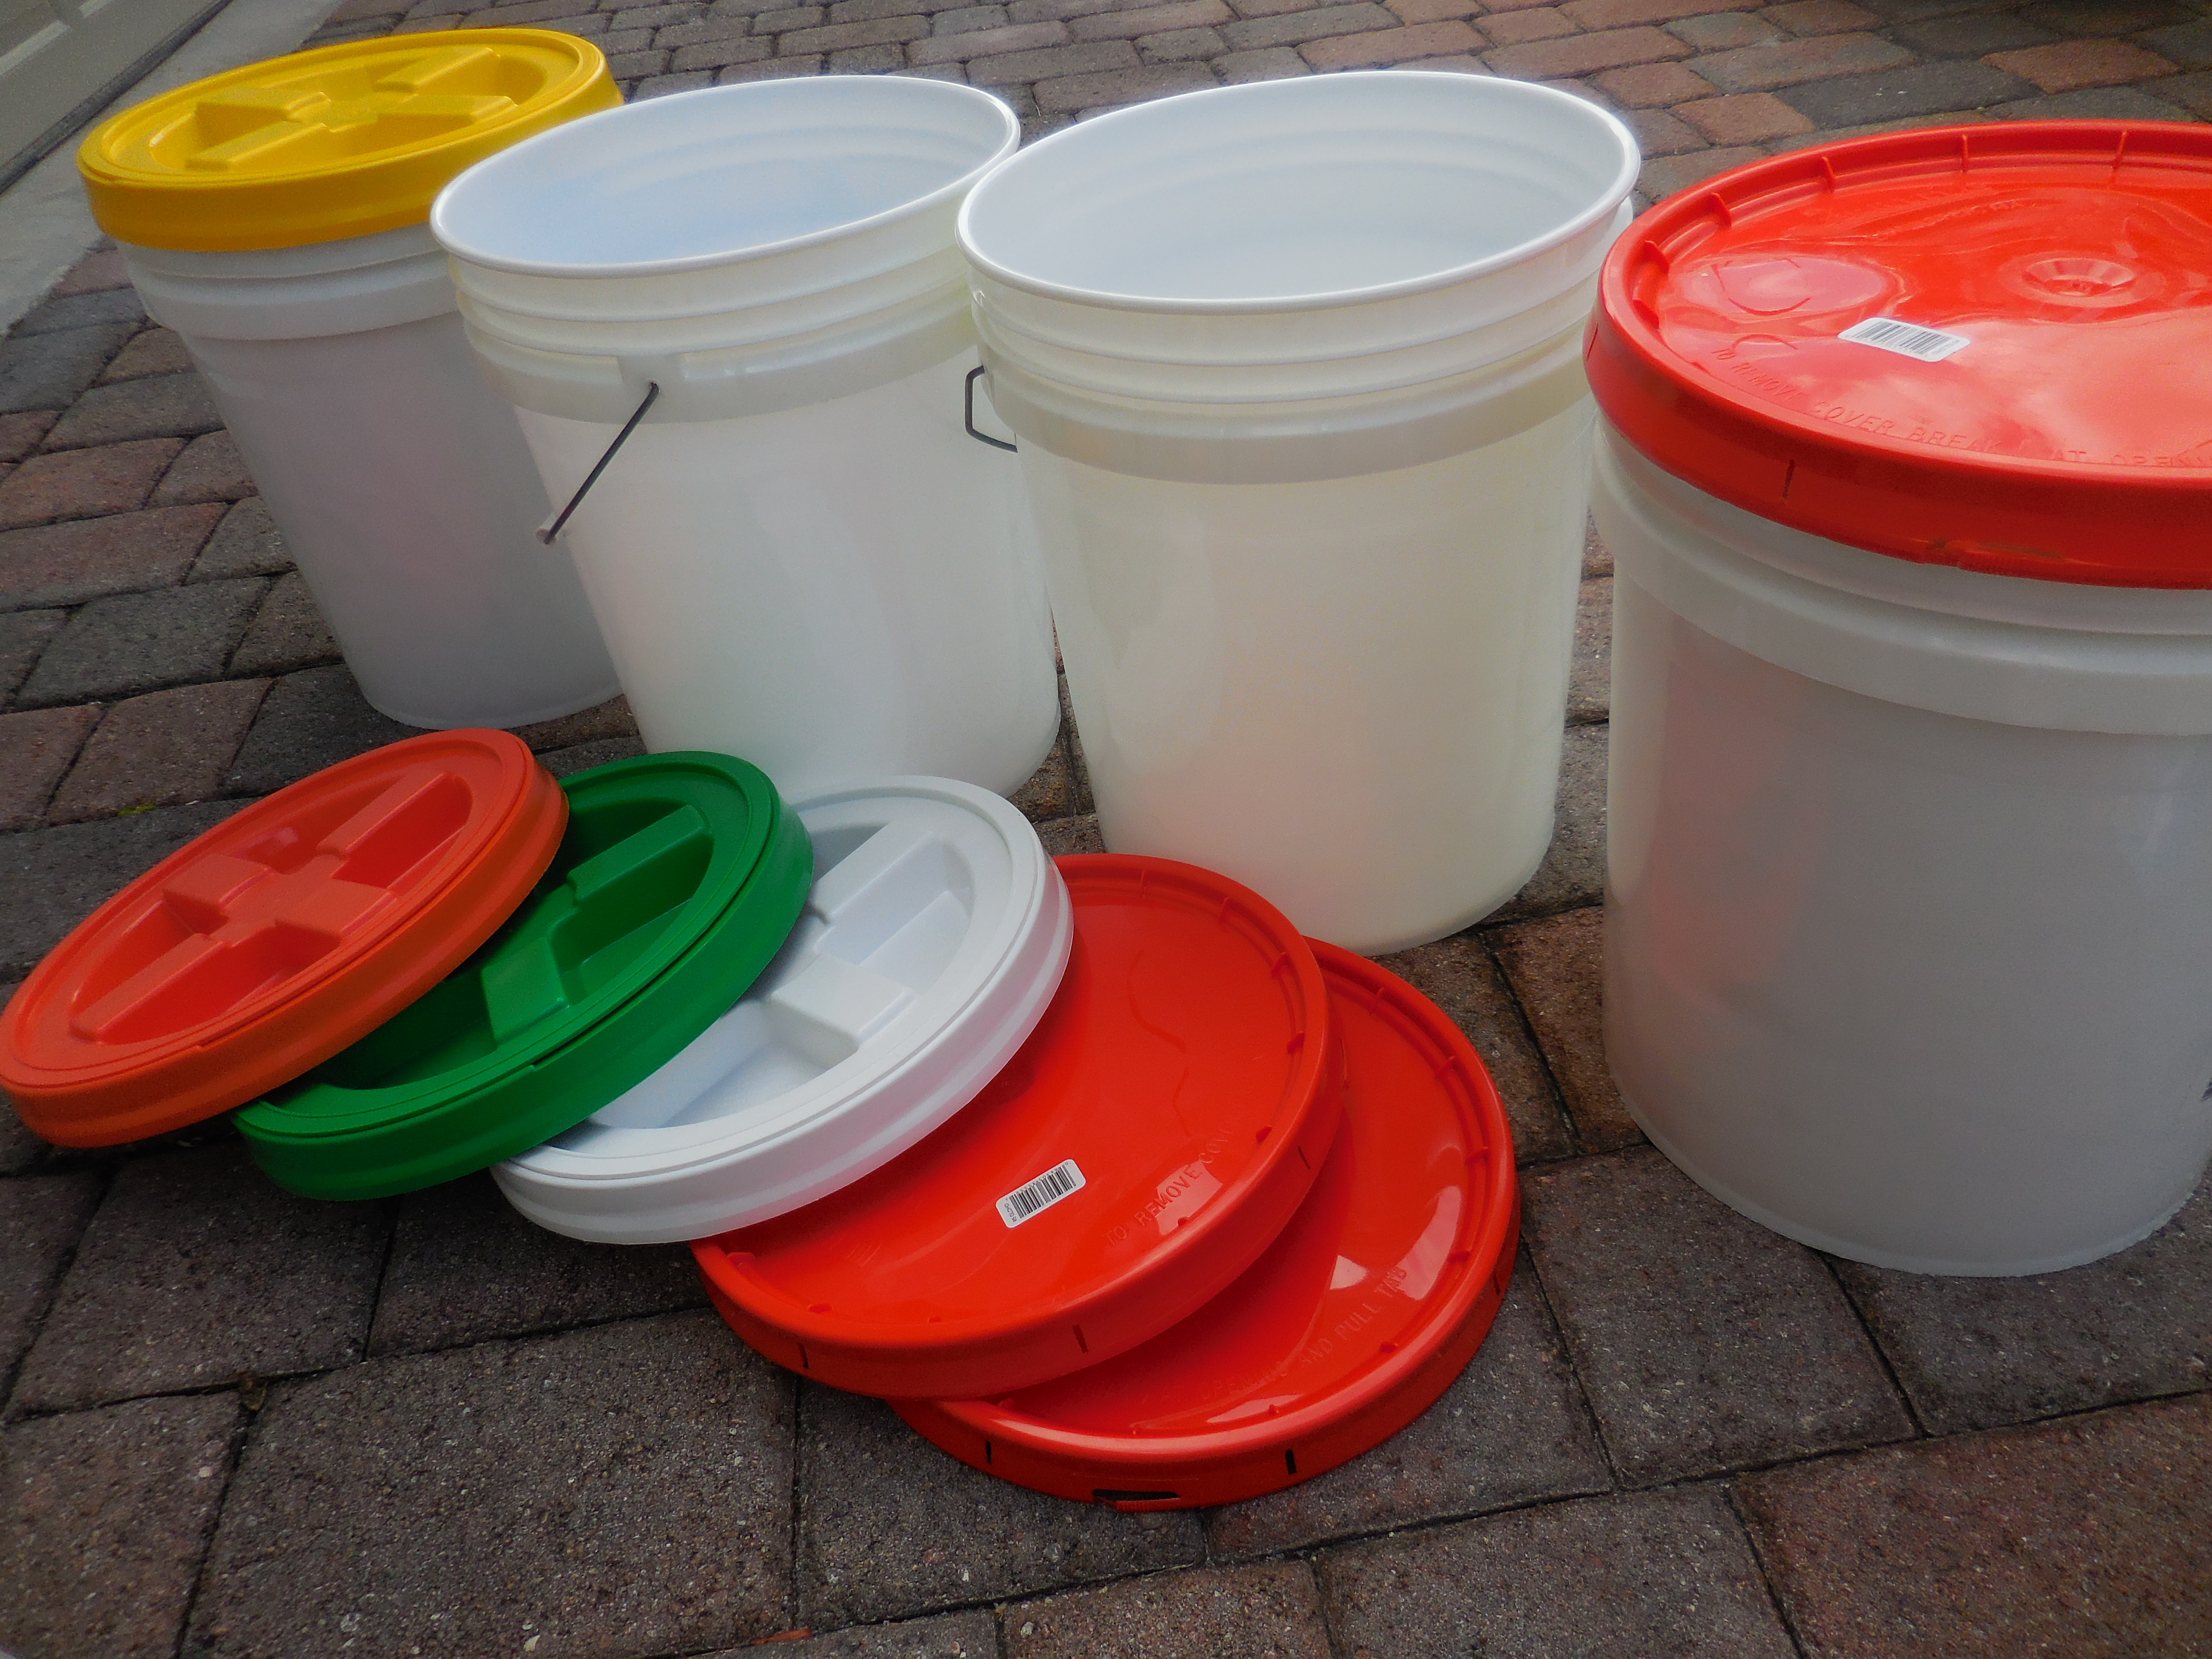 Ergonomic bucket handles which make carrying heavy buckets more comfortable on your hands. & Crisis Cuisine: Long-Term Food Storage | S.W.A.T. Magazine